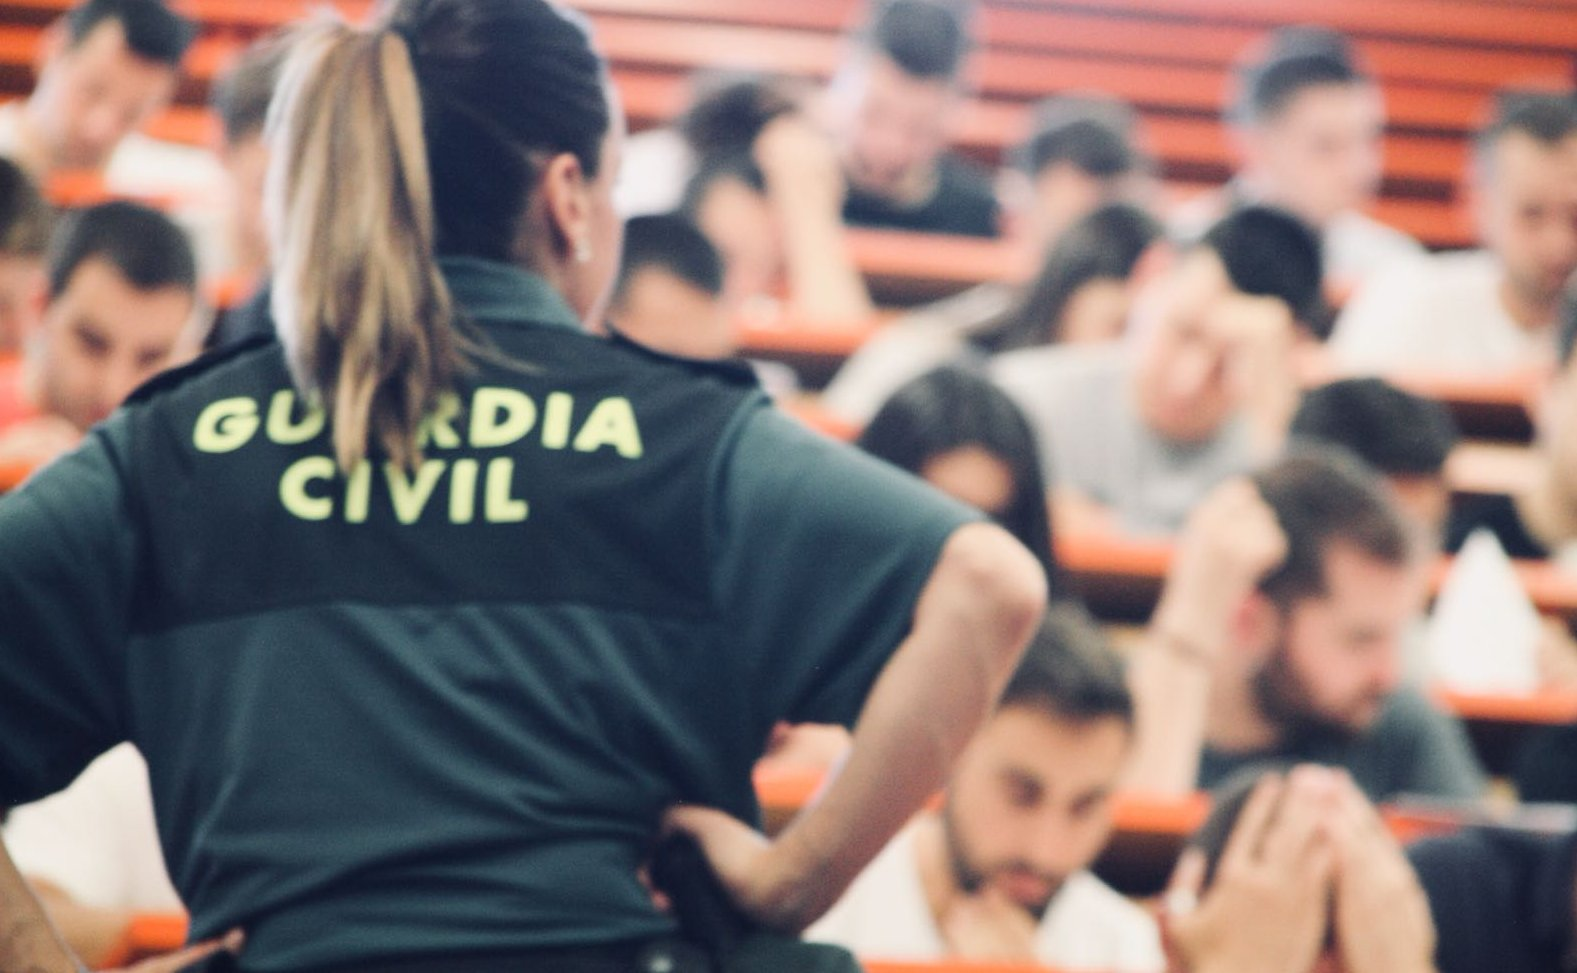 Examen de la oposición de la Guardia Civil en León. /Guardia Civil